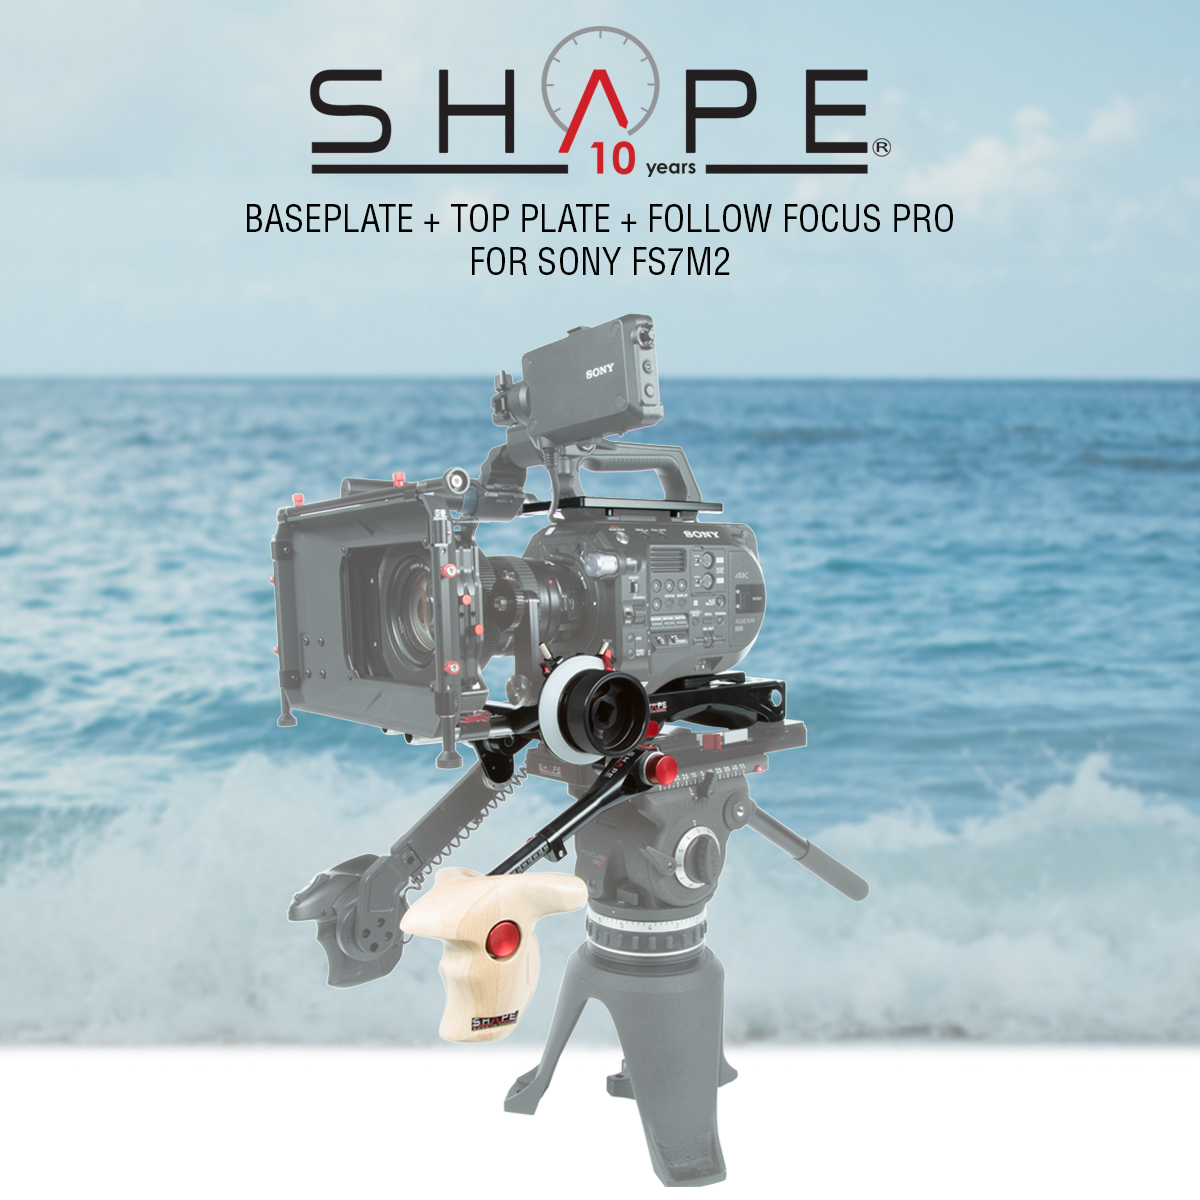 SHAPE FS72FFP – SONY FS7M2 Baseplate Top Plate and Follow Focus Pro